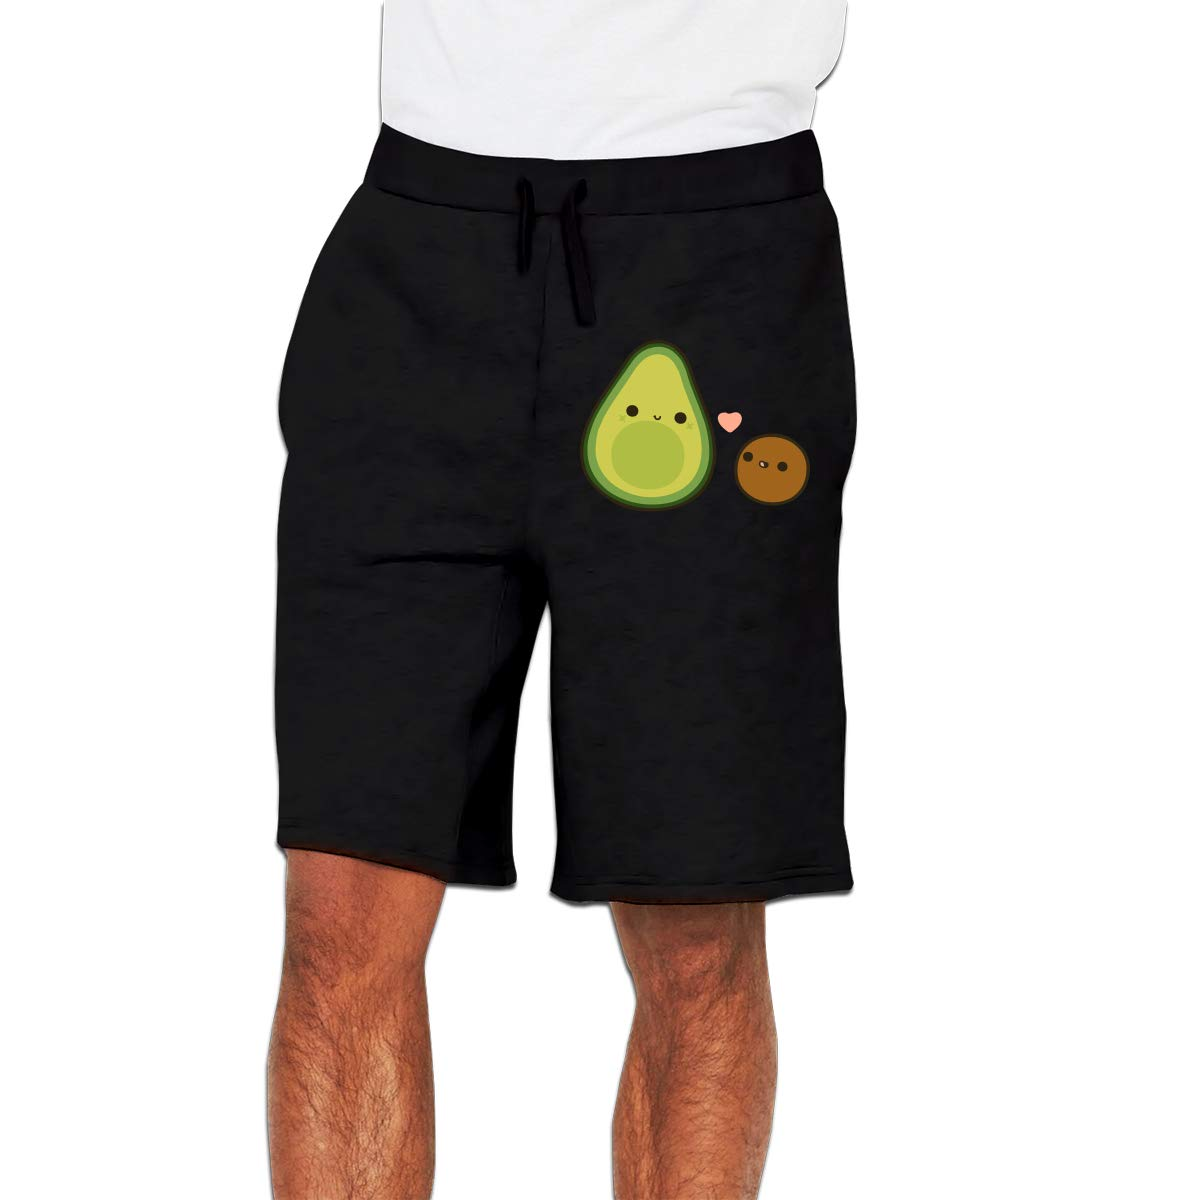 d25868752646f Nx55Ol@KU Men's Fashion Cute Avocado and Stone Jogger Sweatpant  Bodybuilding Gym Shorts Black at Amazon Men's Clothing store: